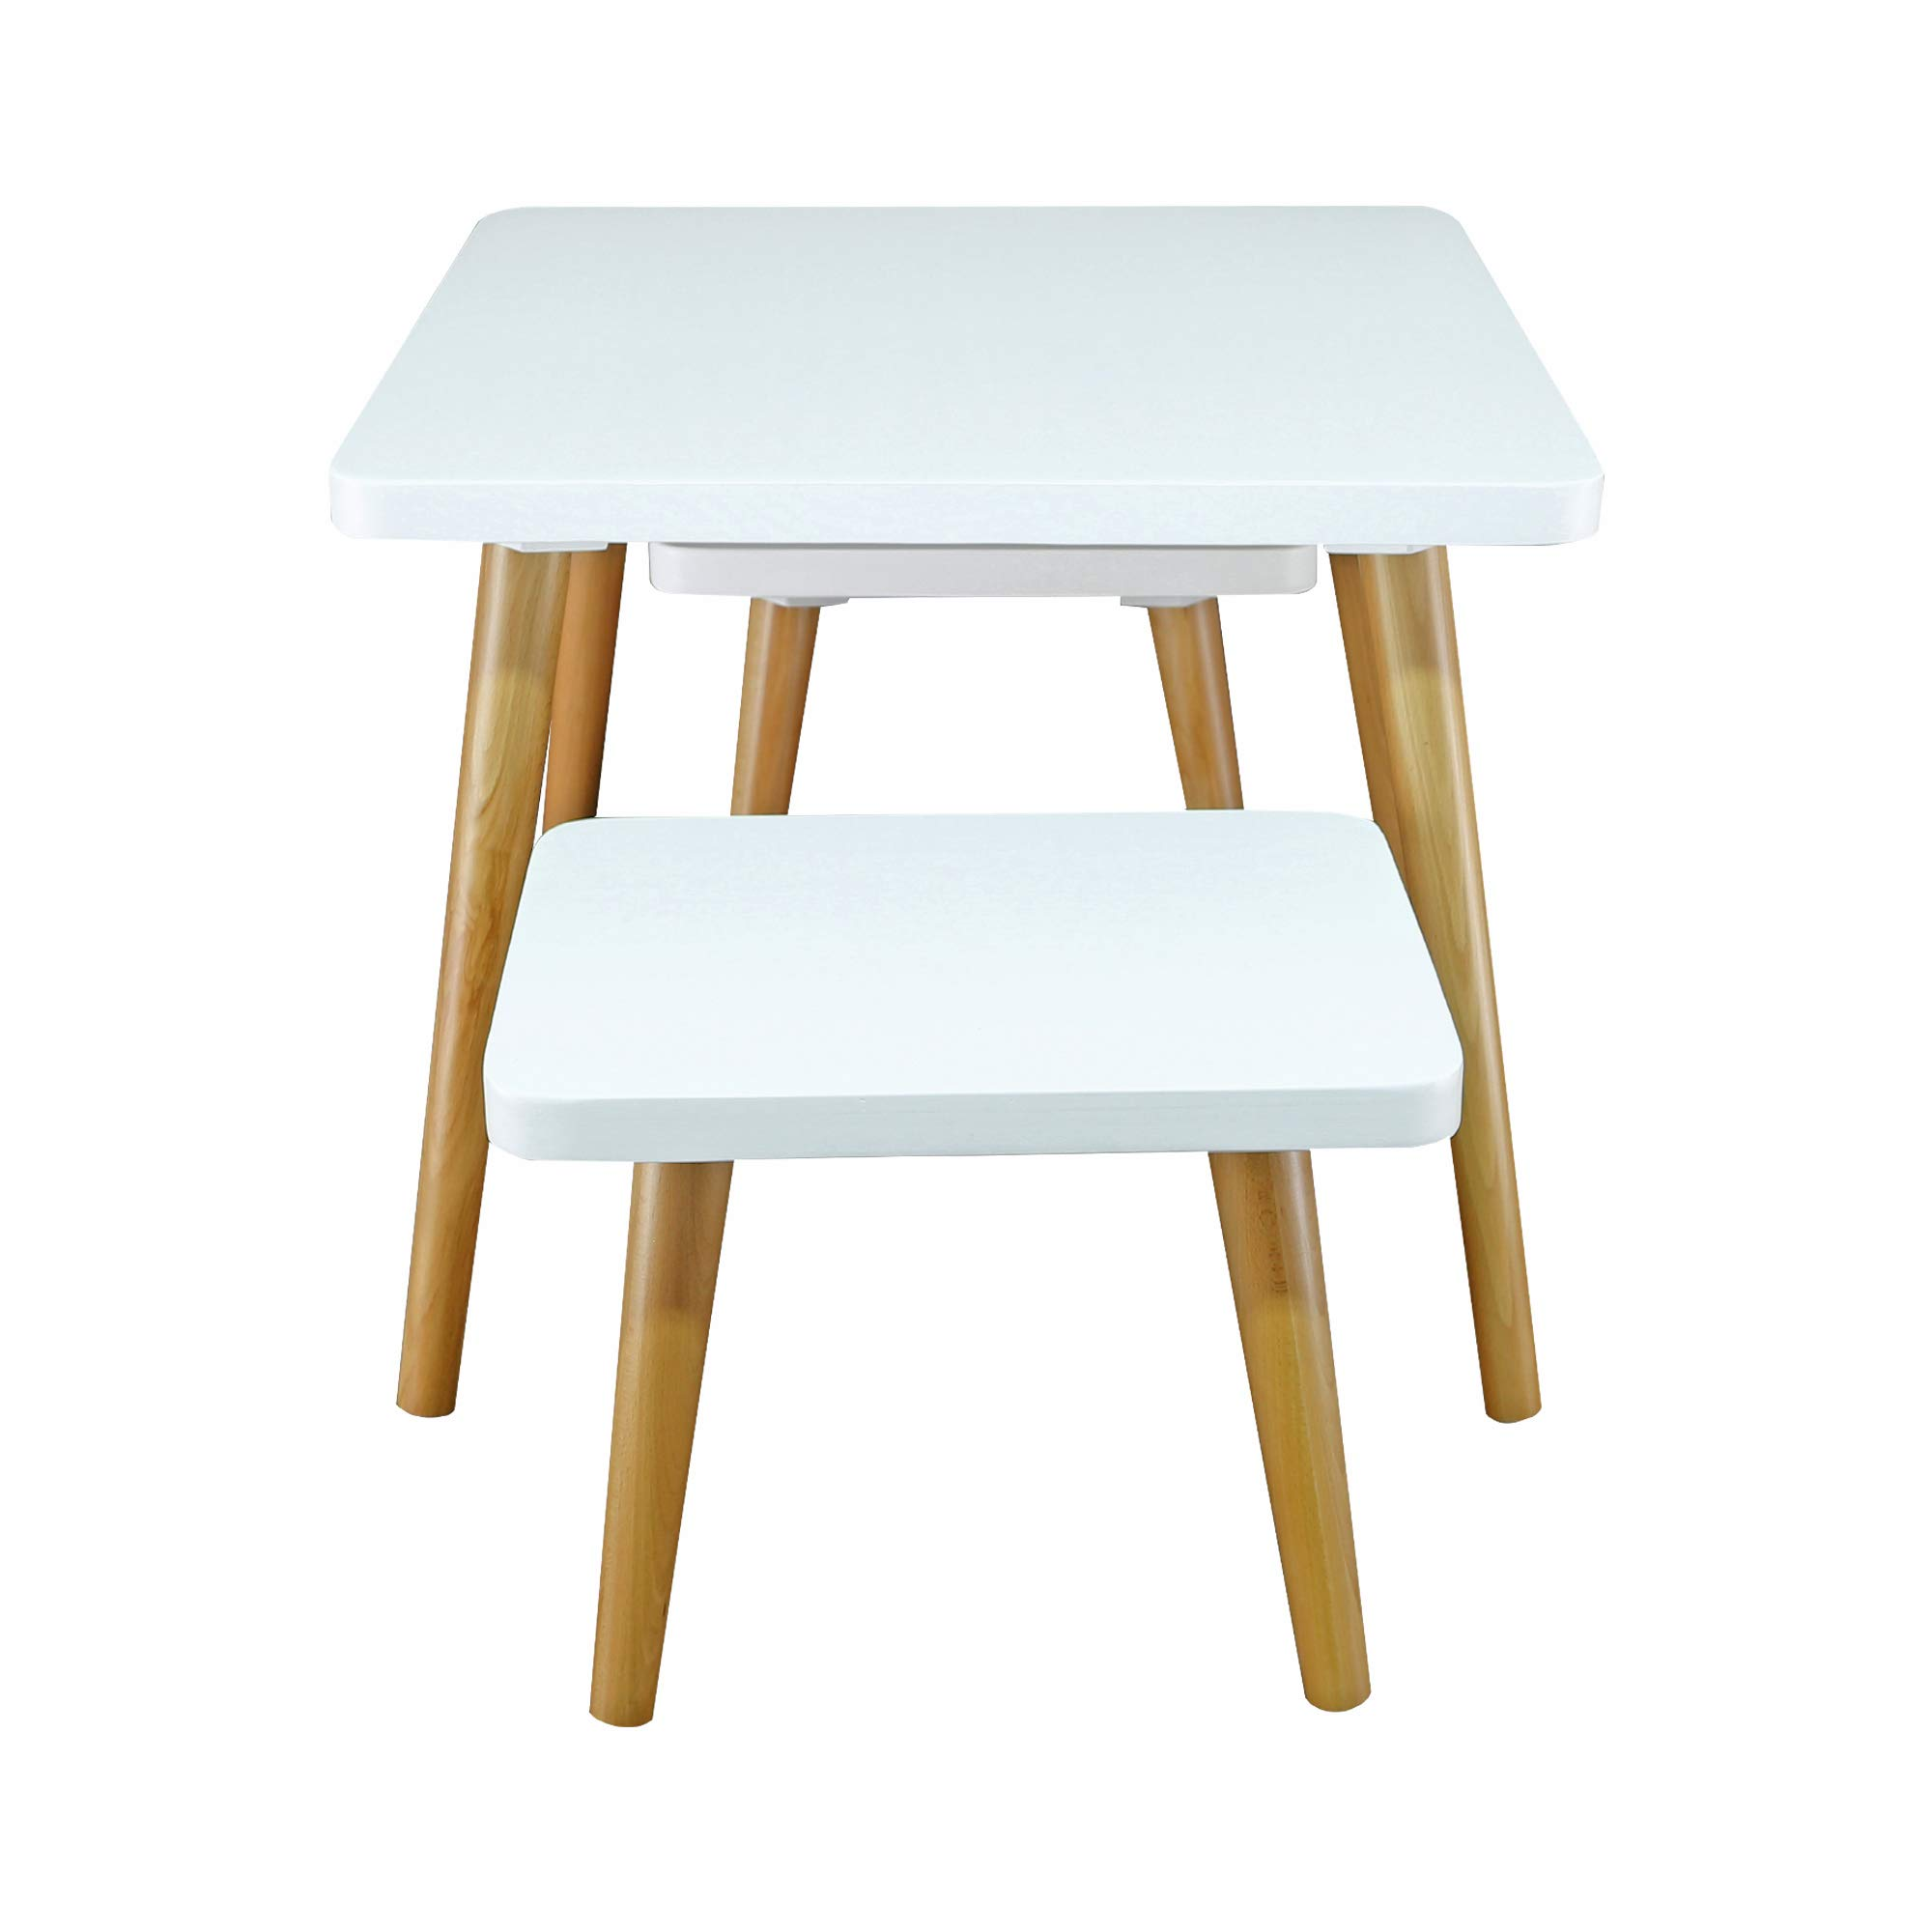 American Trails 560-31 The Easel Table & Chair Set Kid Table, Two-Tone (White, Natural) by American Trails (Image #5)